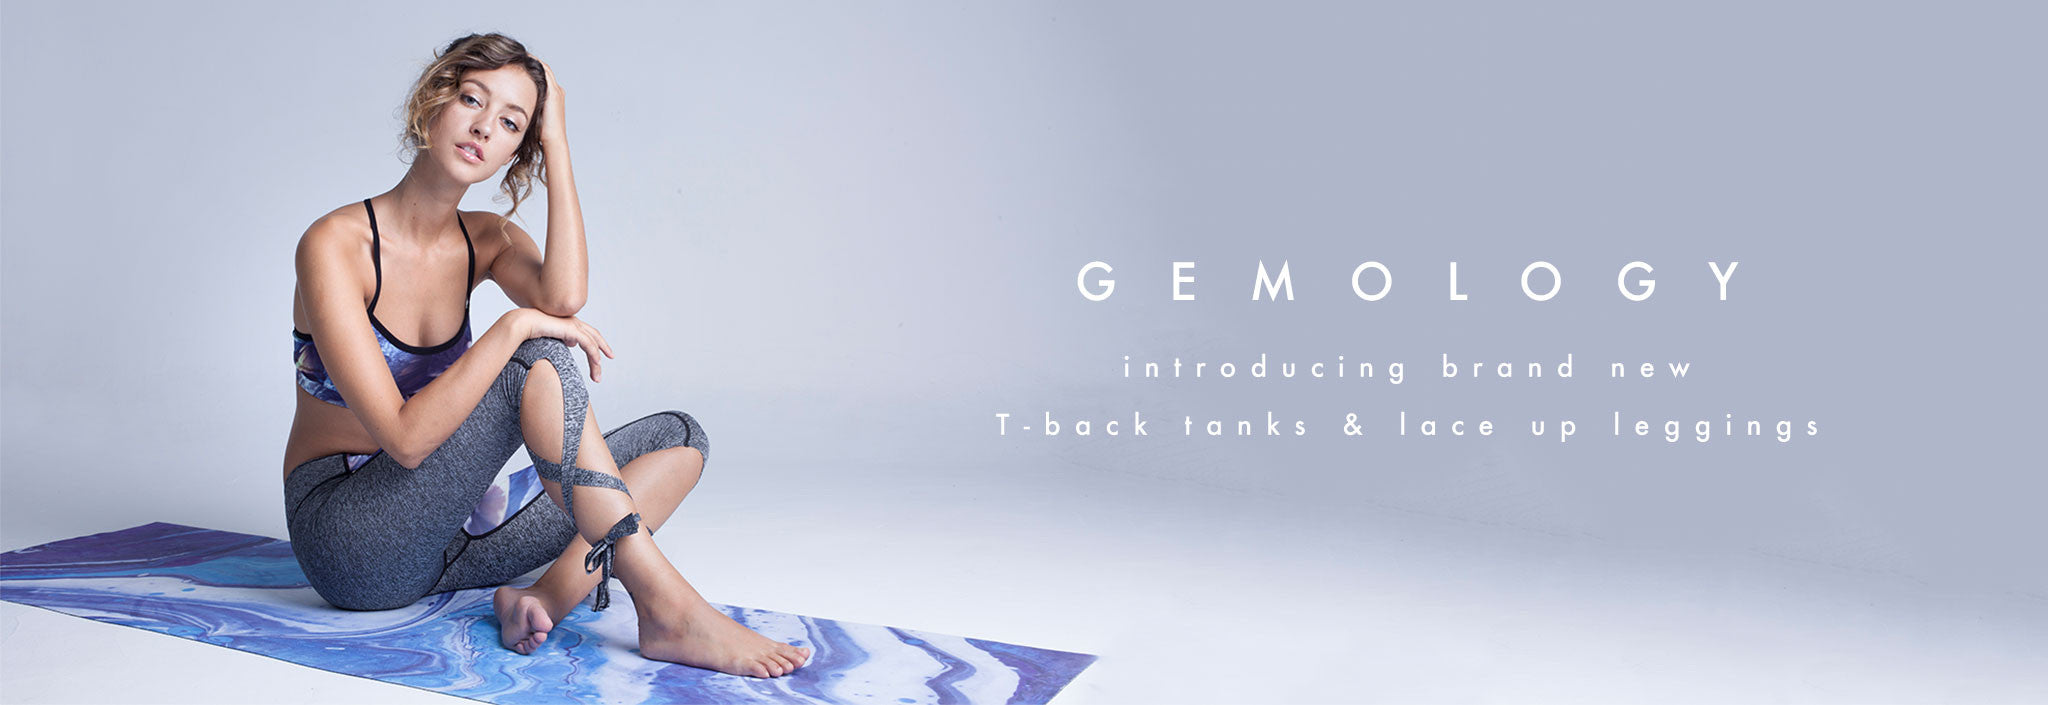 Shop Miss Runner latest sportswear collection: Gemology. Introducing brand new T-back tanks and lace up leggings. The new staples to your athleisure wardrobe.